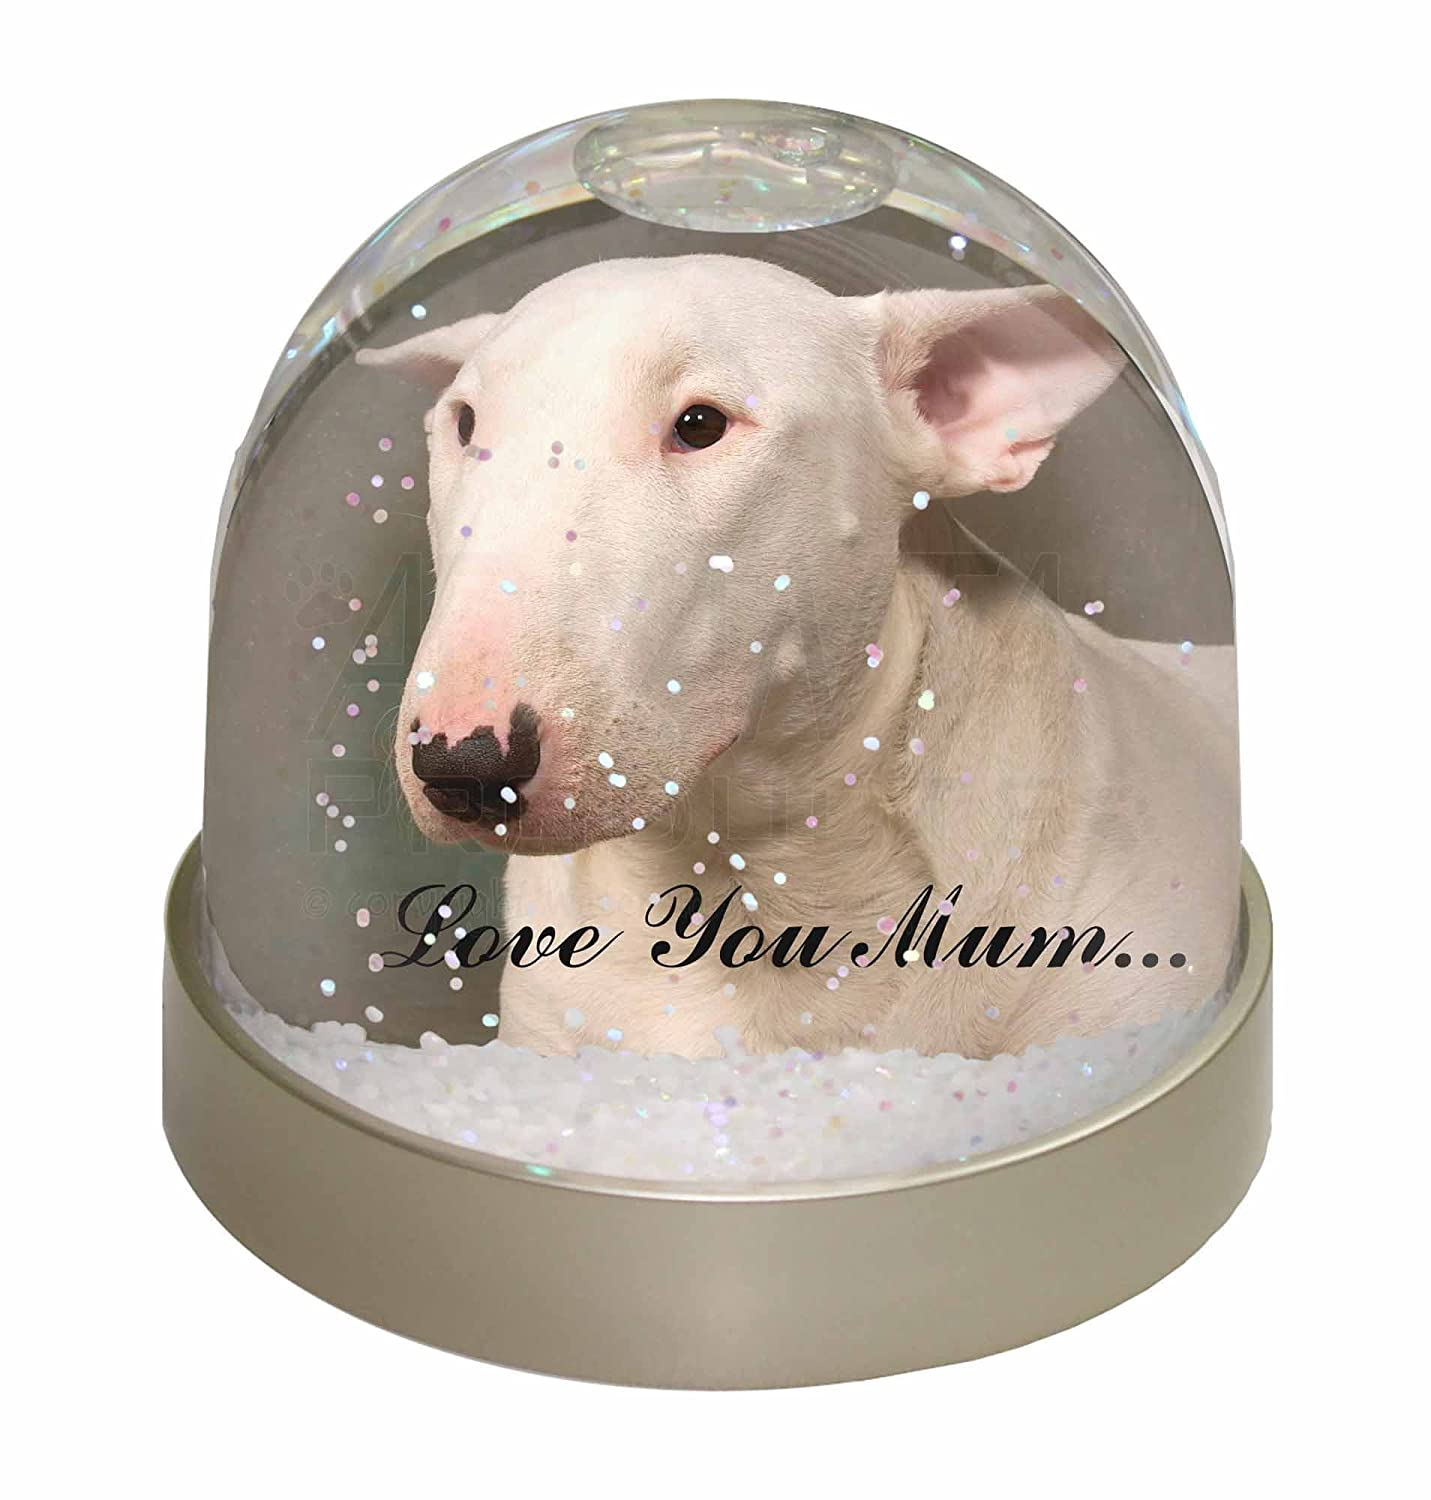 Advanta White Bull Terrier 'Love You Mum' Photo Snow Globe Waterball Stocking Filler Gift, Multi-Colour, 9.2 x 9.2 x 8 cm Advanta Products AD-BUT1lymGL